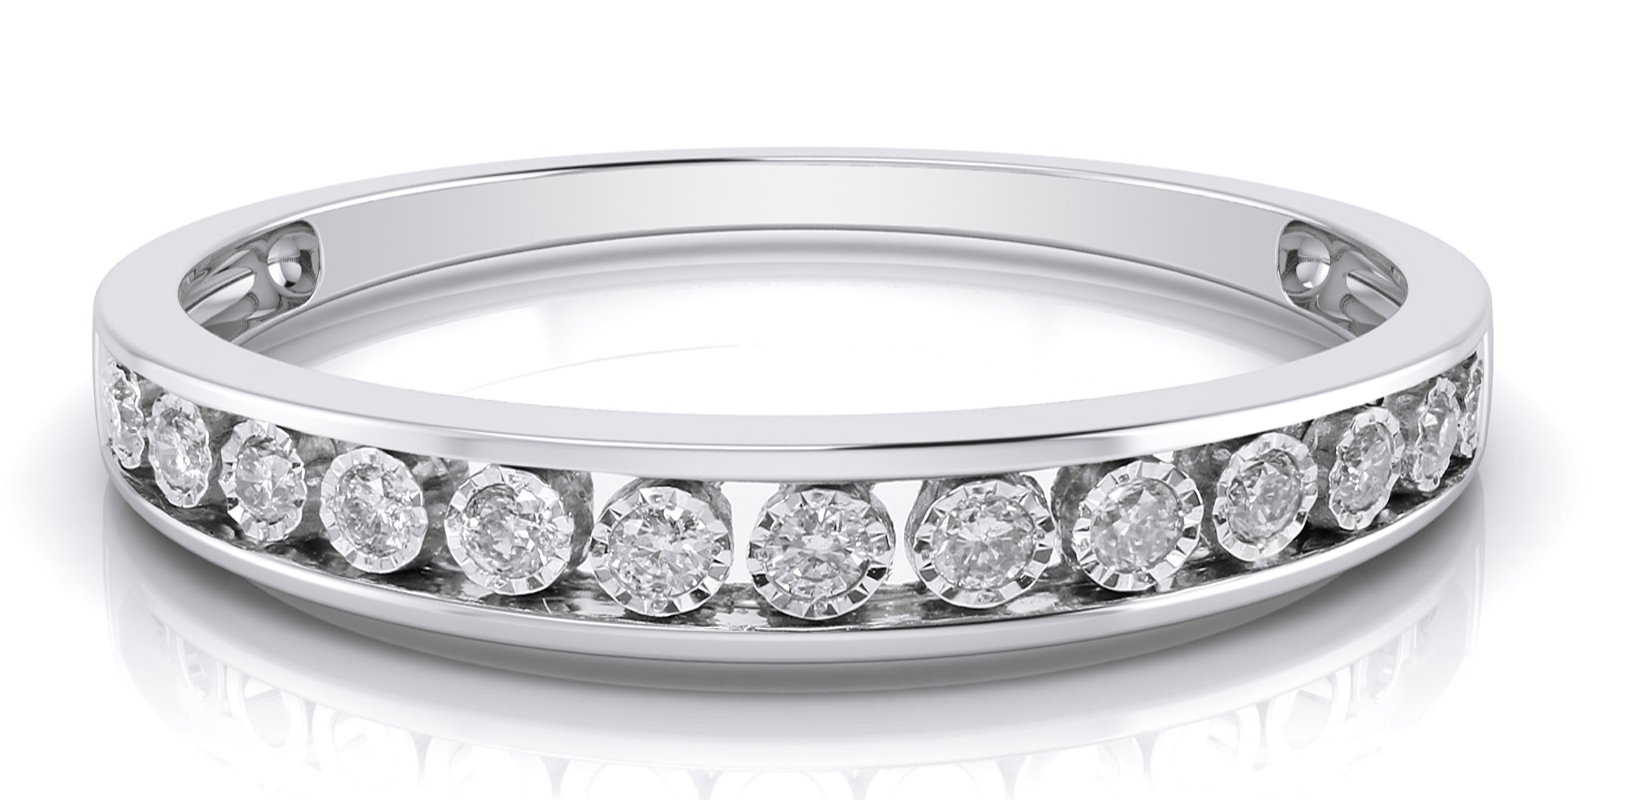 10k White Gold 3mm Channel Set Diamond Band Wedding Anniversary Ring (0.15 ct I-J Color Clarity Si2) (white-gold, 6.5) by Buy Jewels (Image #2)